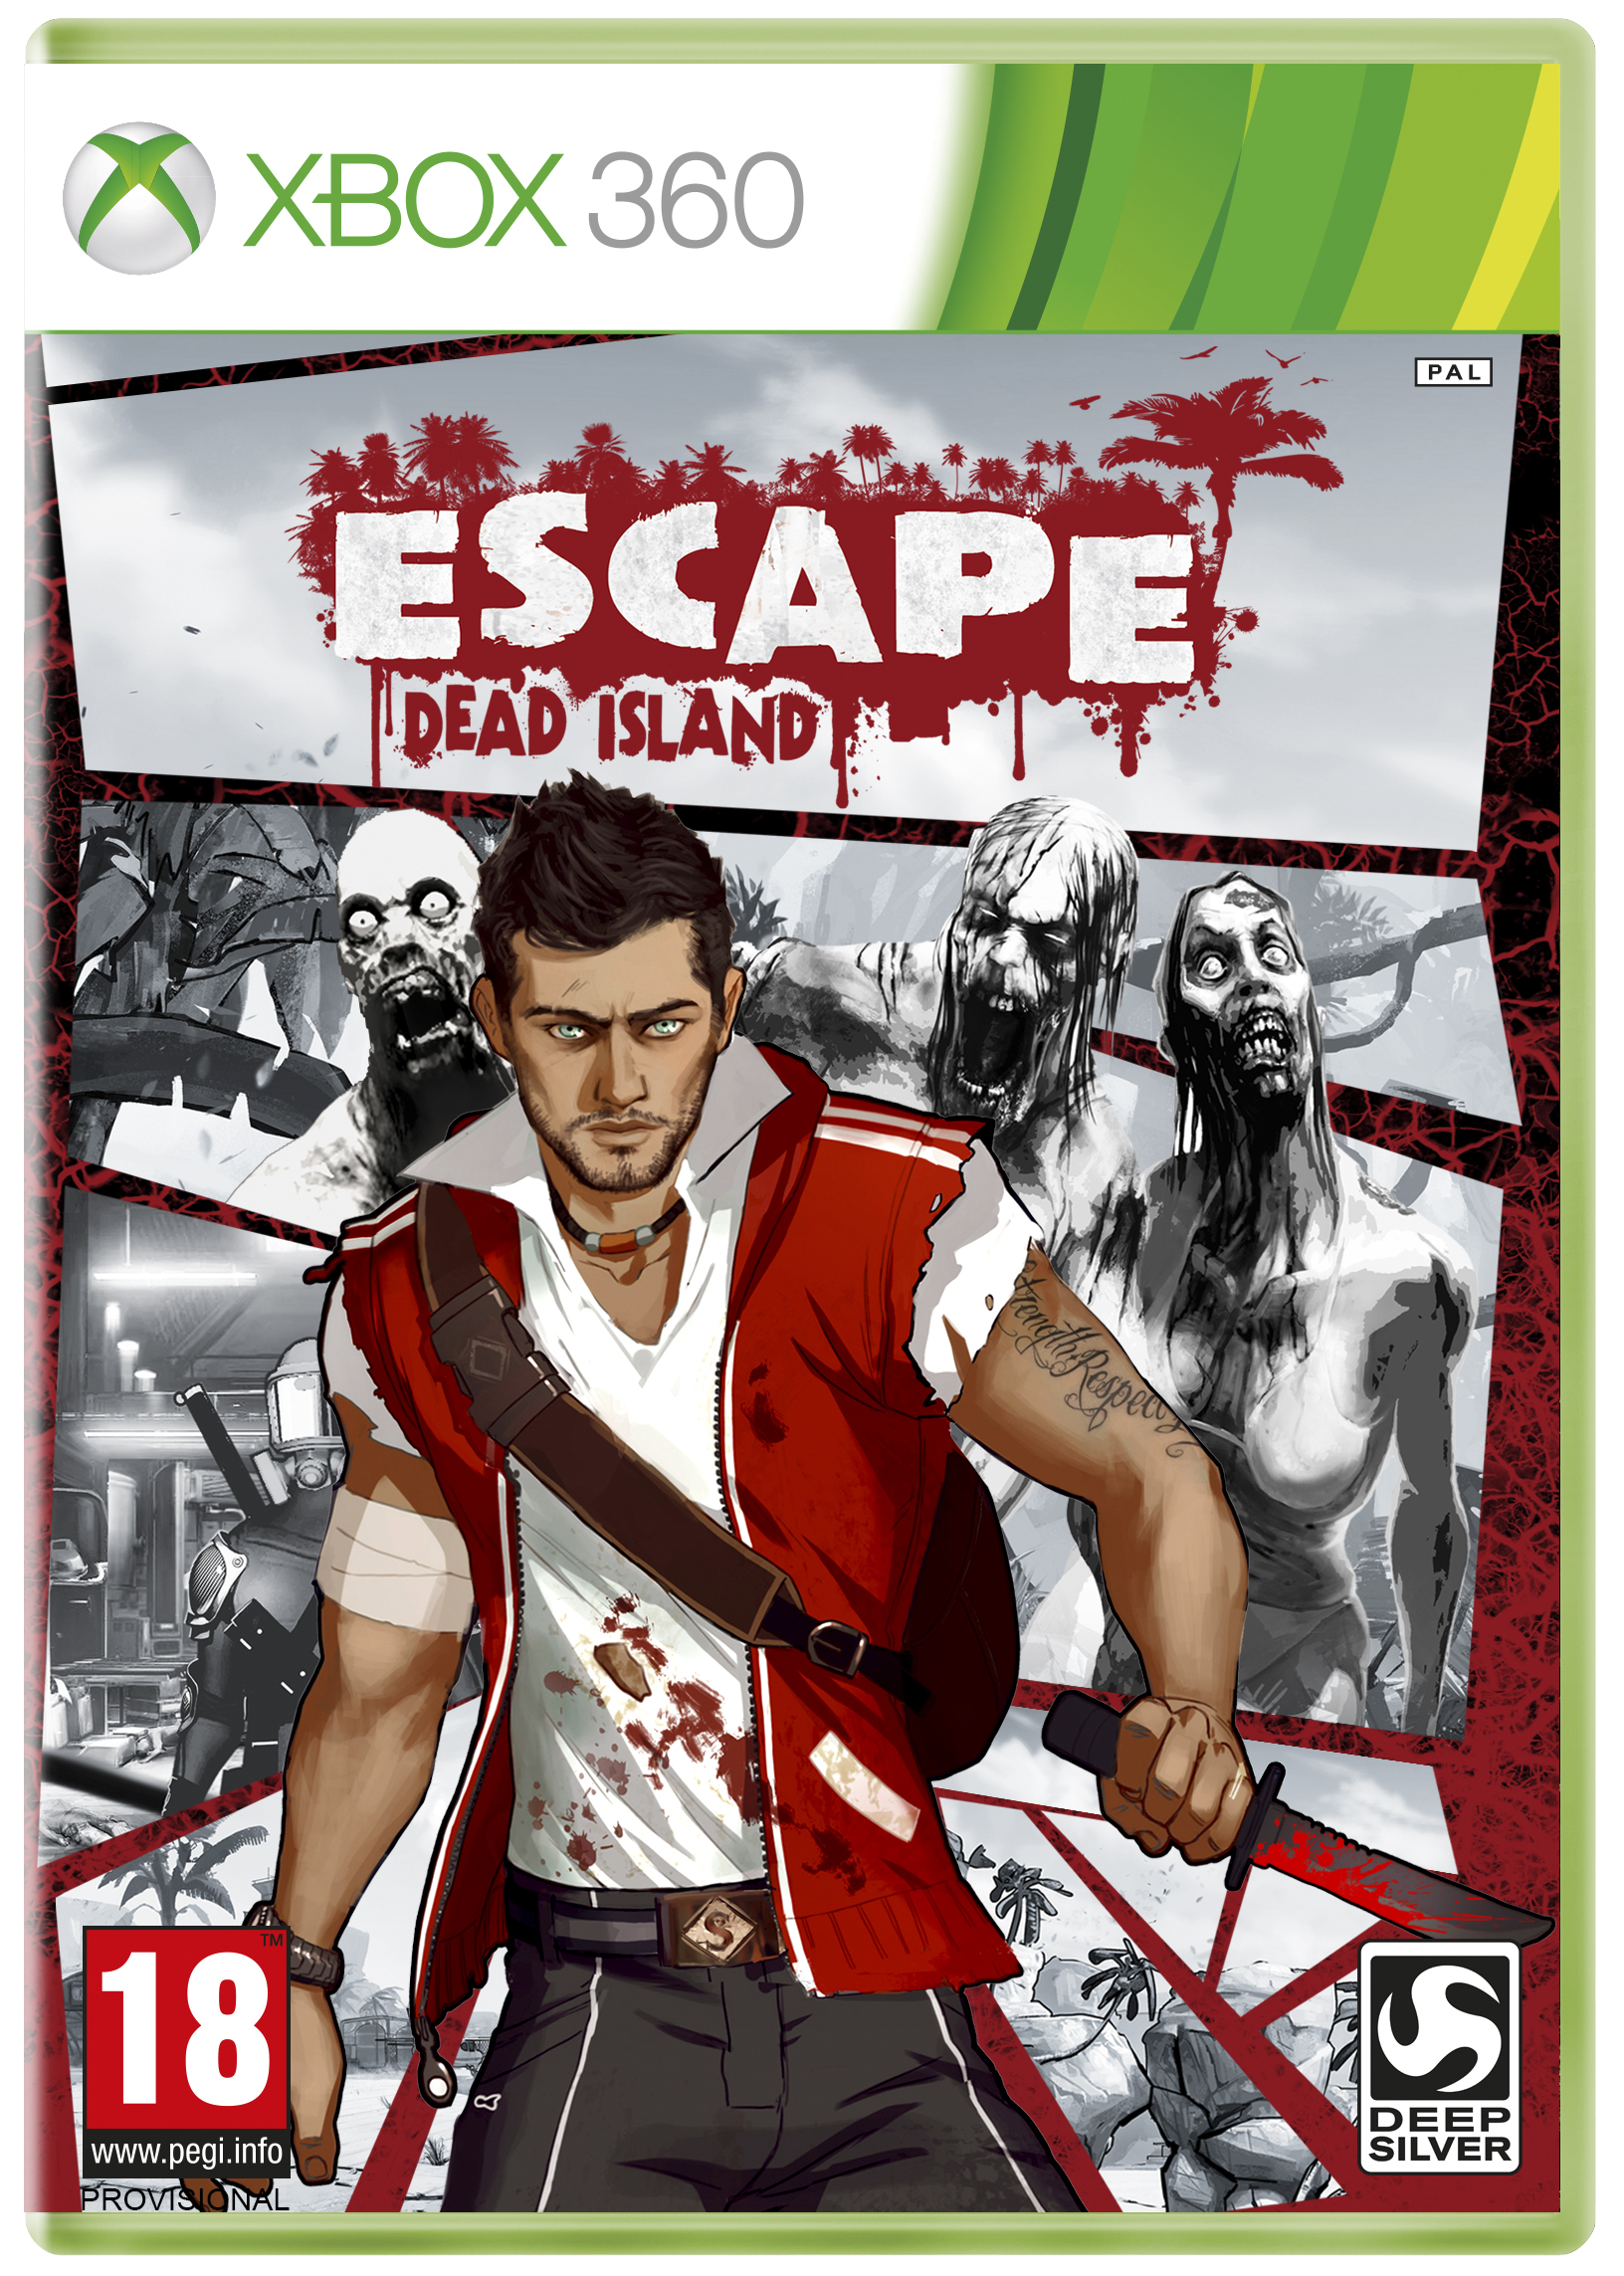 Box art - ESCAPE Dead Island